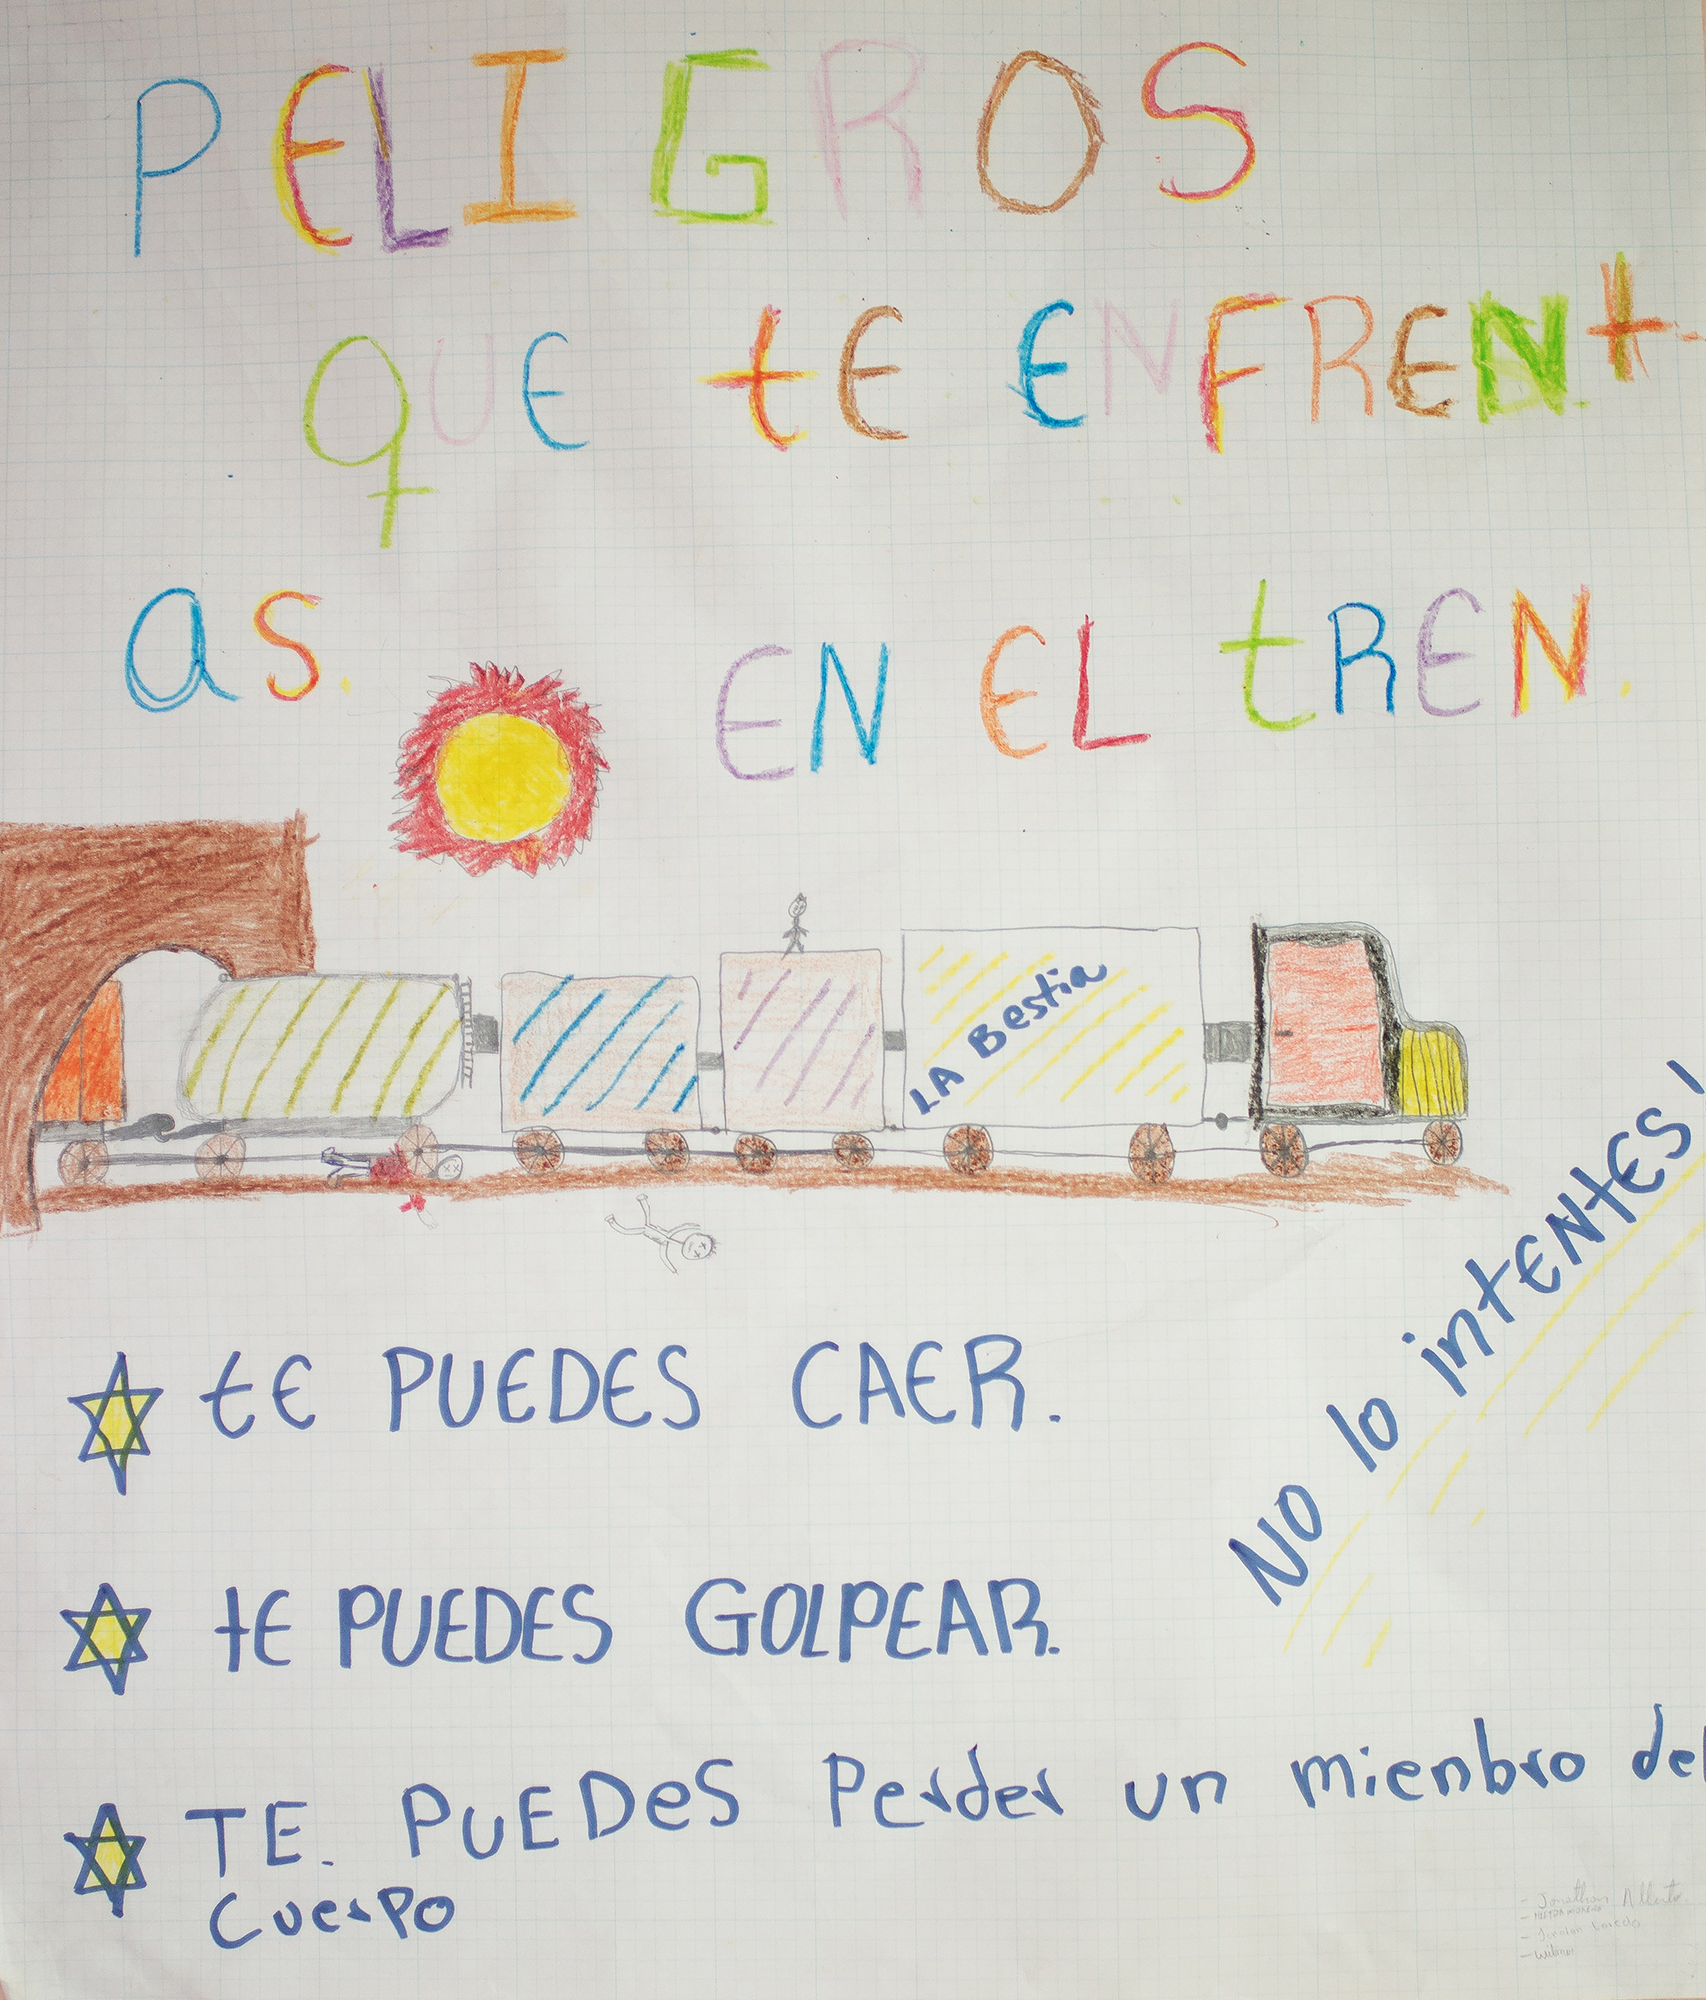 """Drawing that can be found in the CAMEF (Border Minors Service Center) about the dangers of traveling on the Train The Beast. It reads: """"hazards you face on the train: you can fall, you can get hit, you can loose a part of your body. Do not try."""". The purpose of CAMEF is to offer 24-hour assistance to migrant or repatriated children, providing shelter, food, medical care and other supports. Nuevo Laredo, Tamaulipas, Mexico. June 24rd, 2018. Photographer: Luján Agusti."""